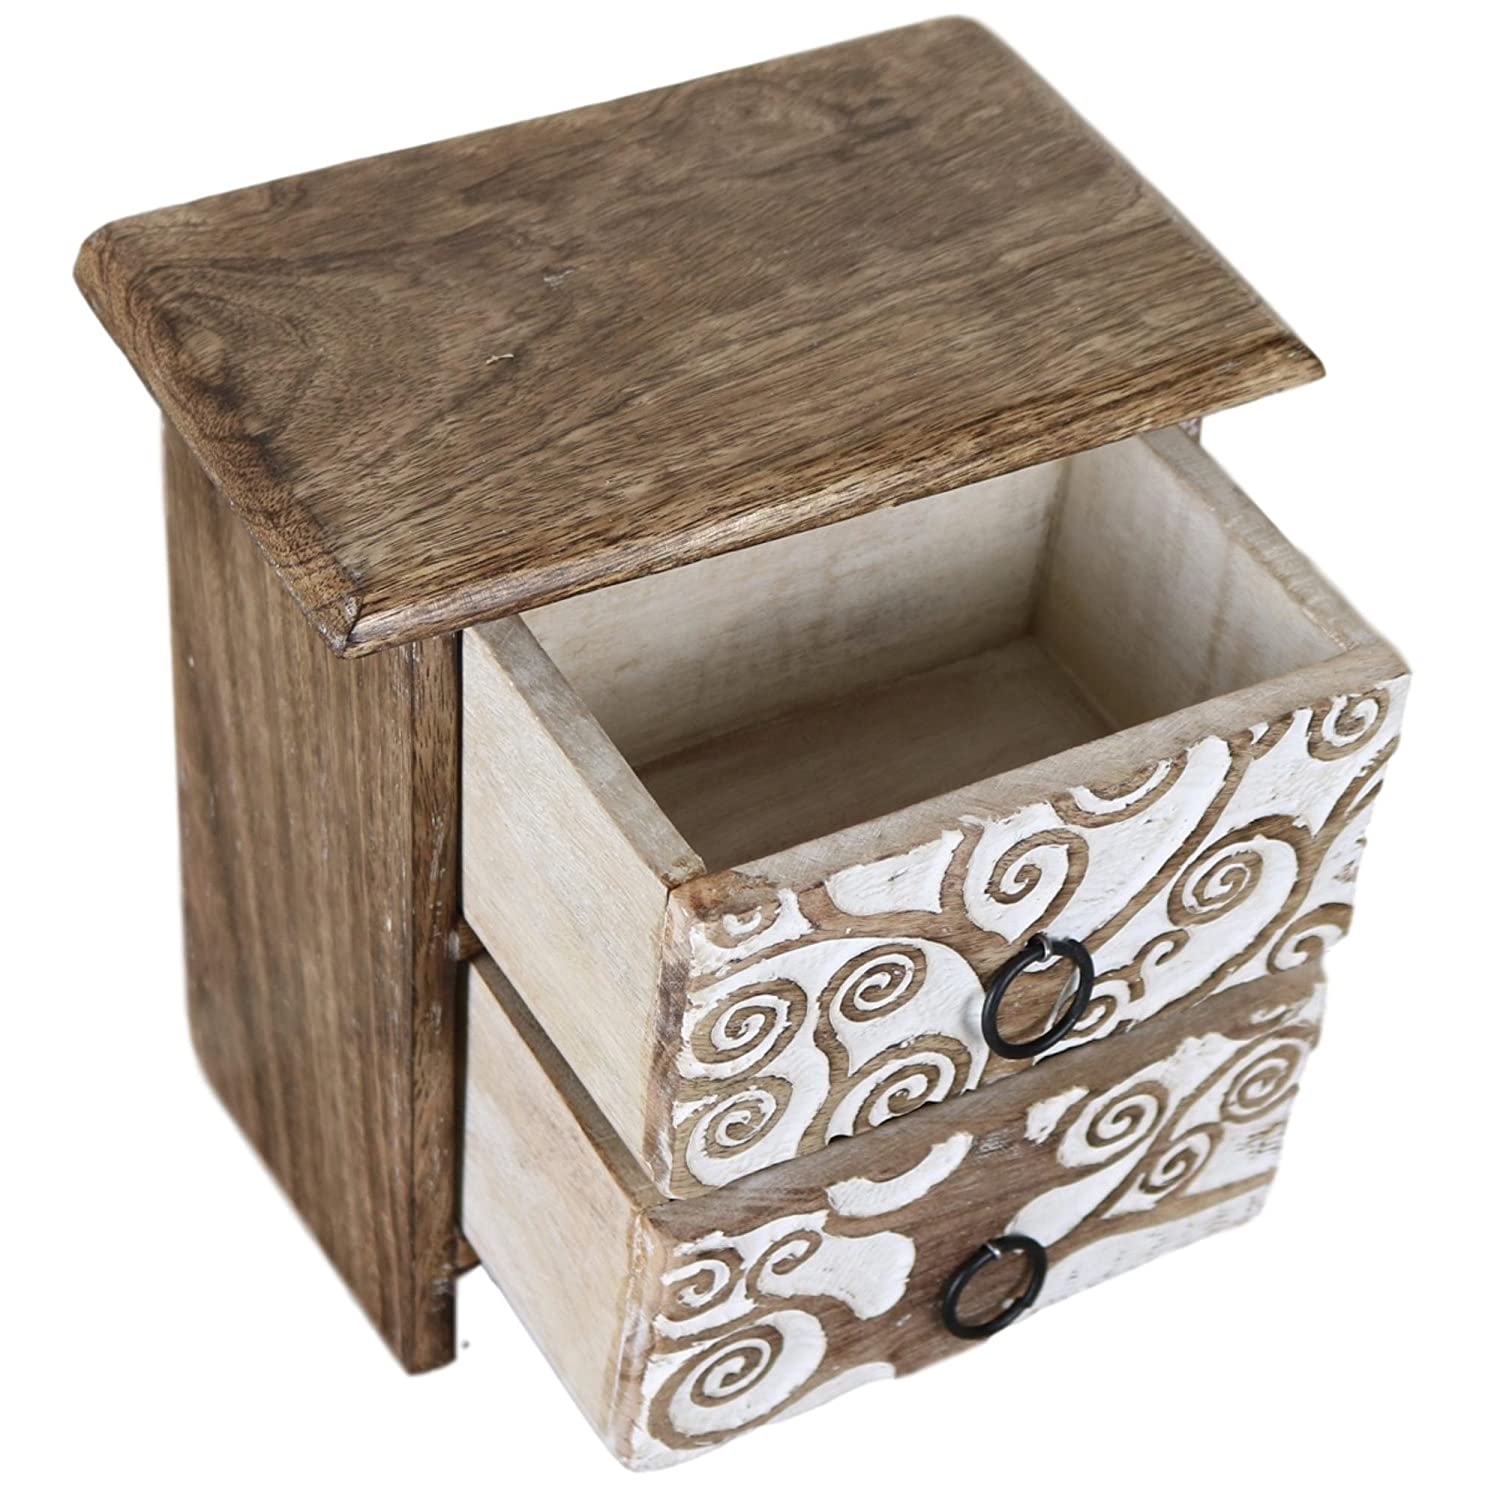 Handcrafted Tree of Life Set of Carved Wood Drawers Chest Decorative Storage Box 2D-01 Ferus /& Fivel